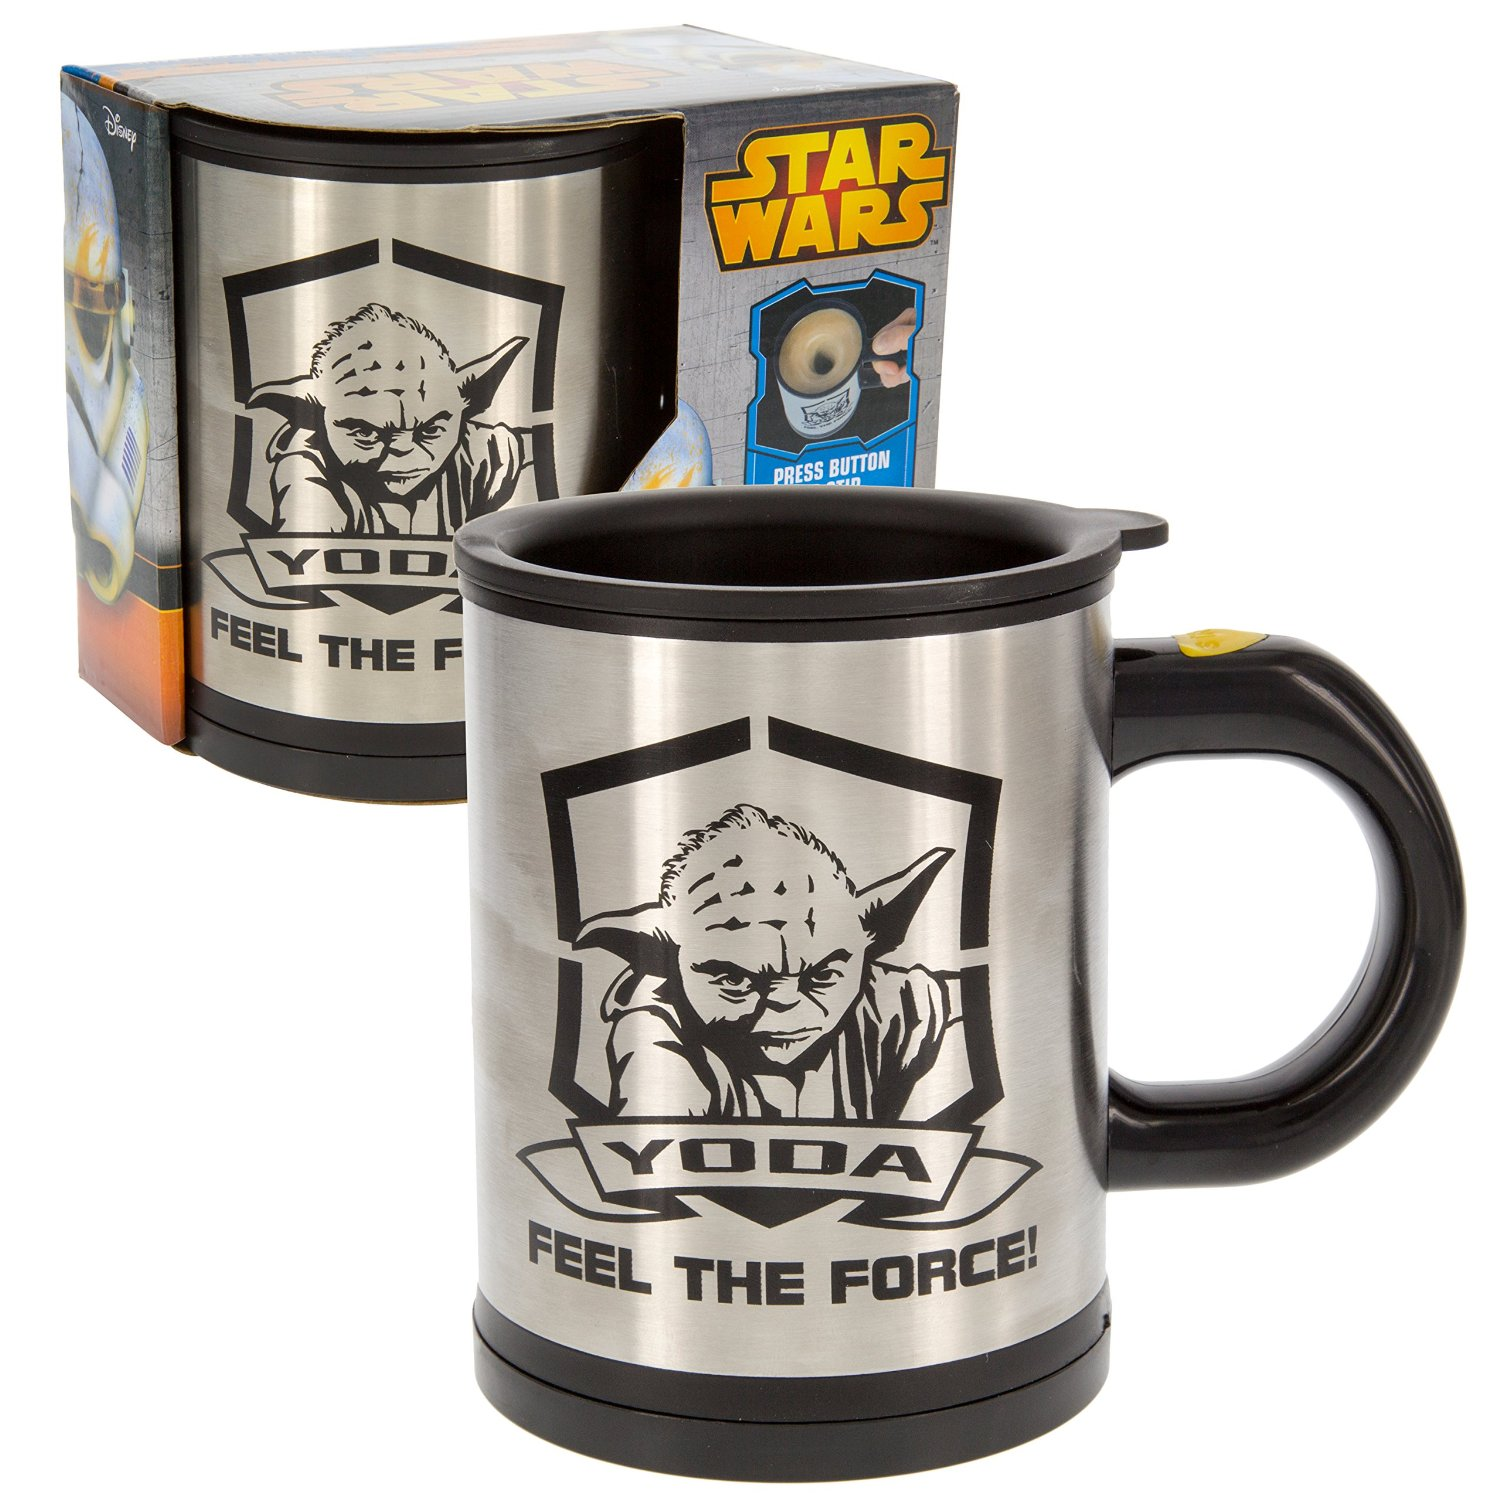 Star Wars Gift Guide For The Home 3